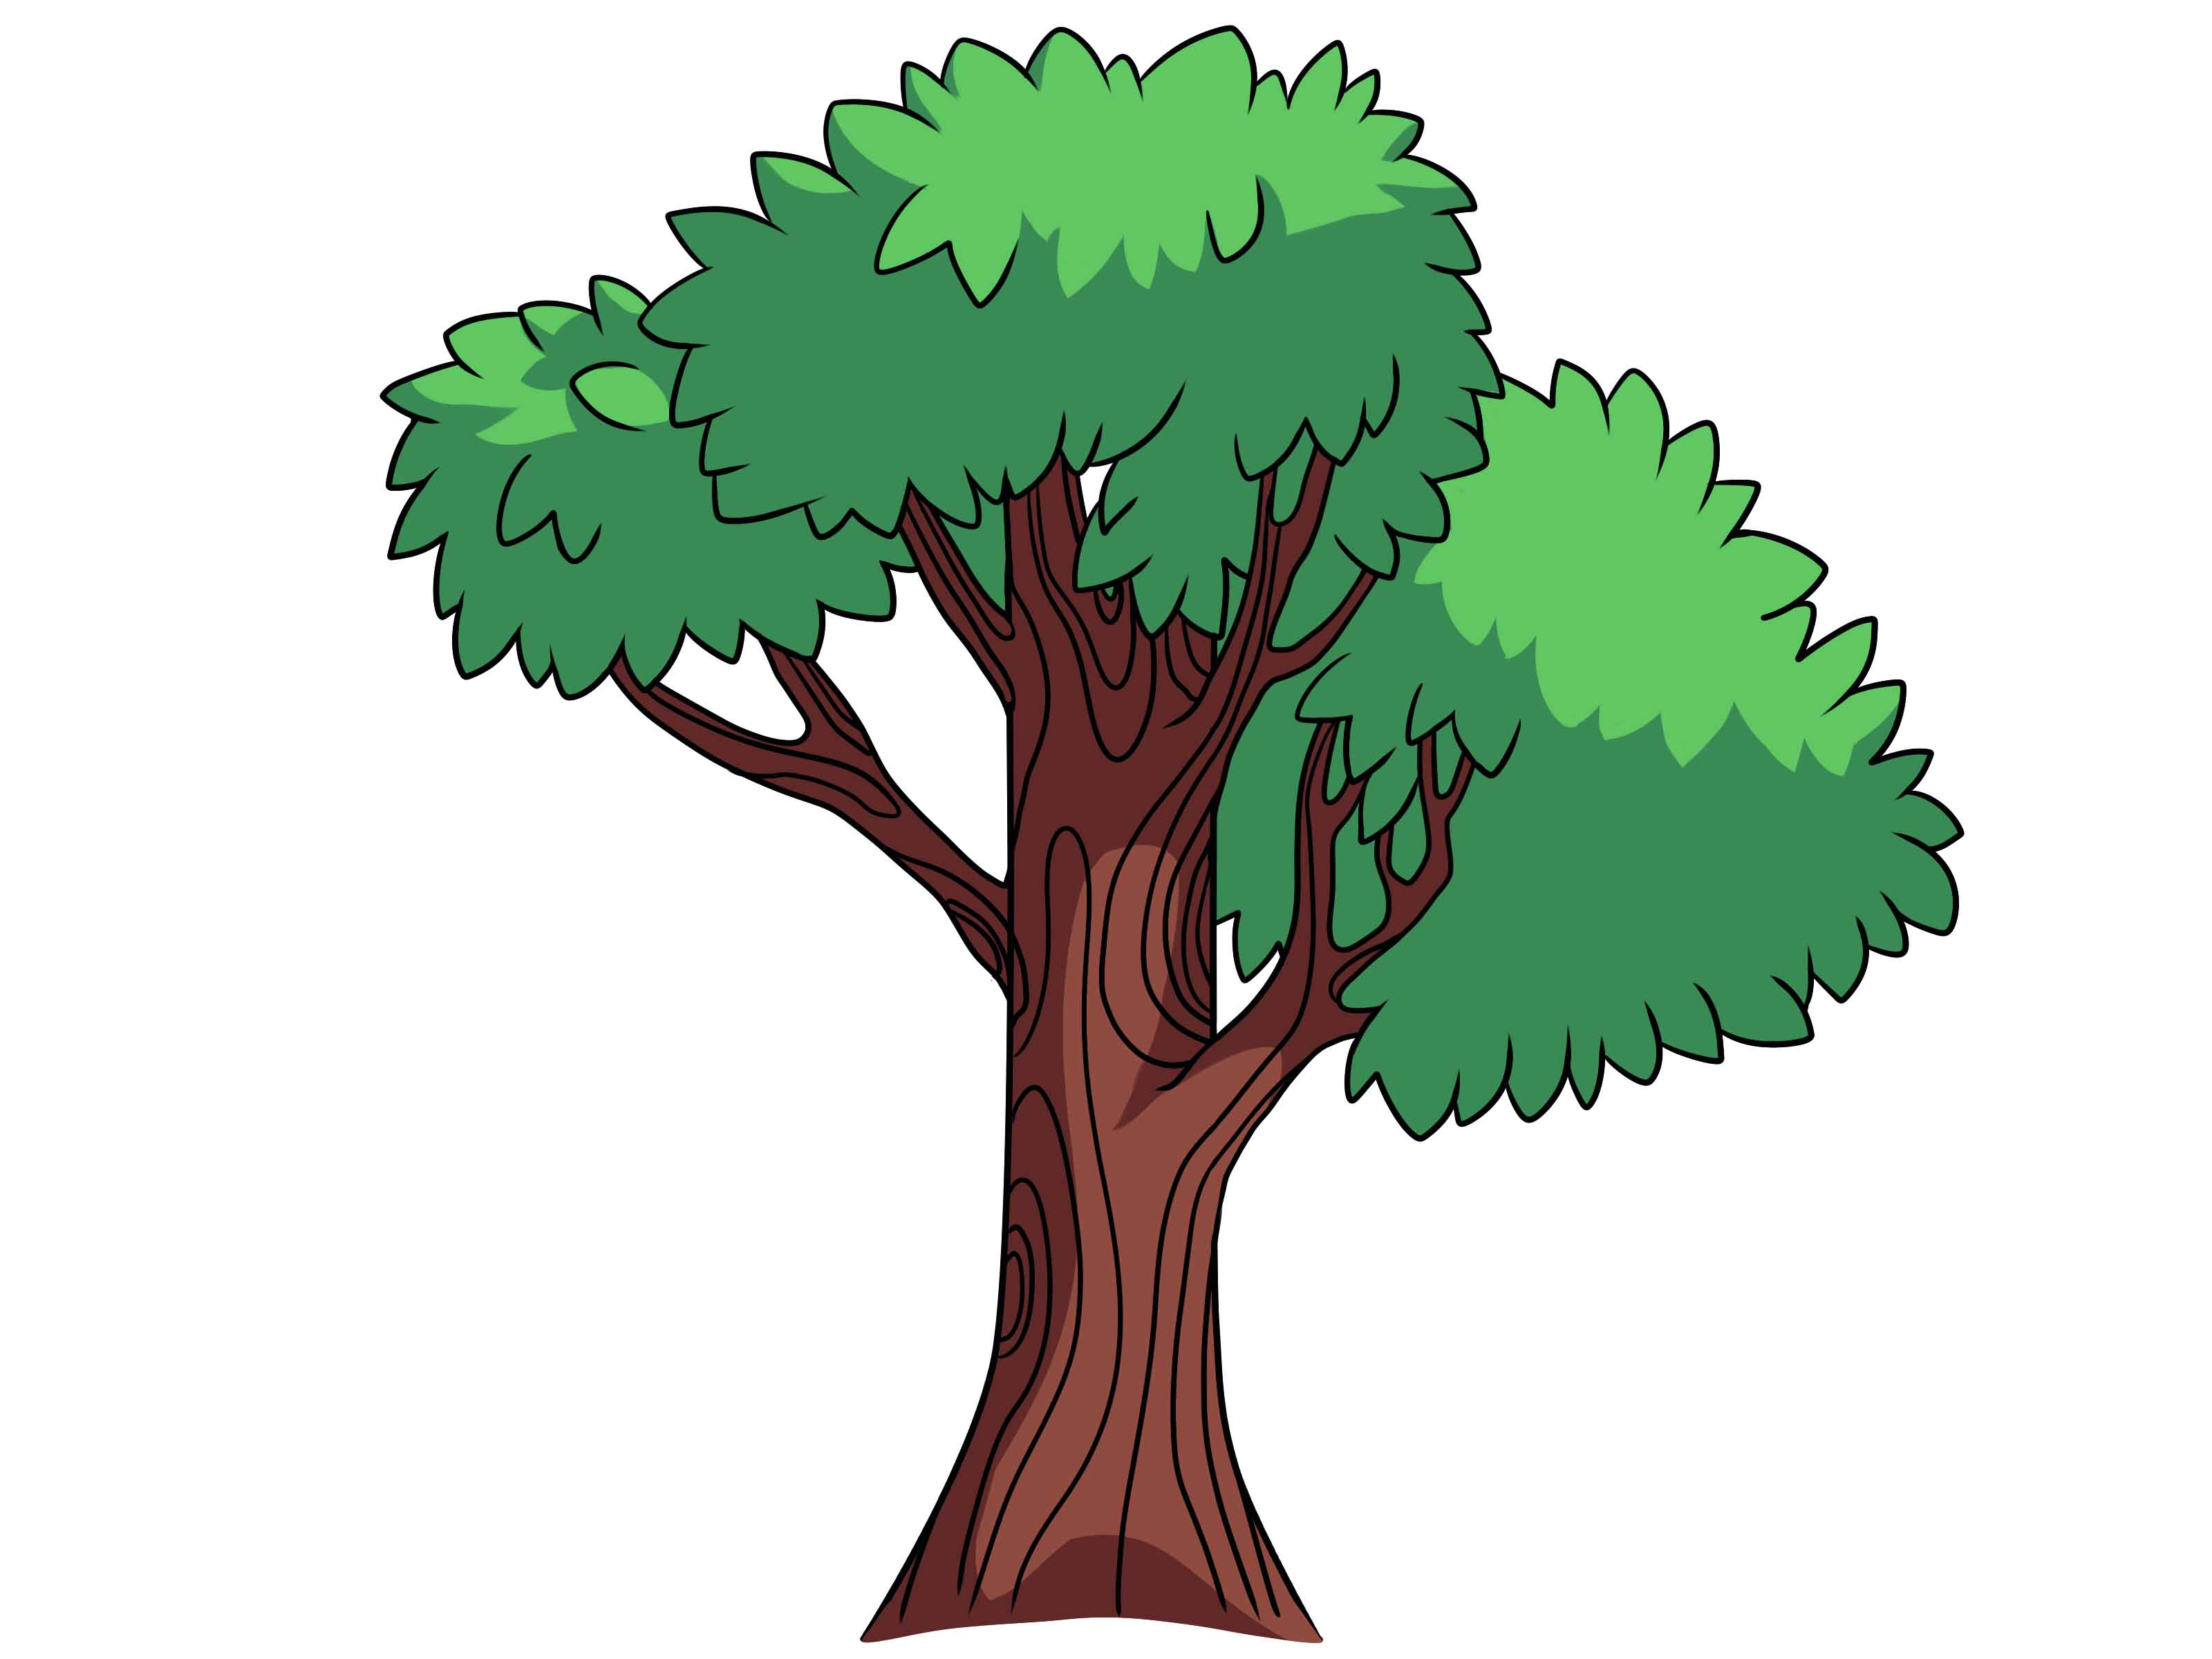 Cartoon Tree Drawing at GetDrawings.com | Free for personal use ...